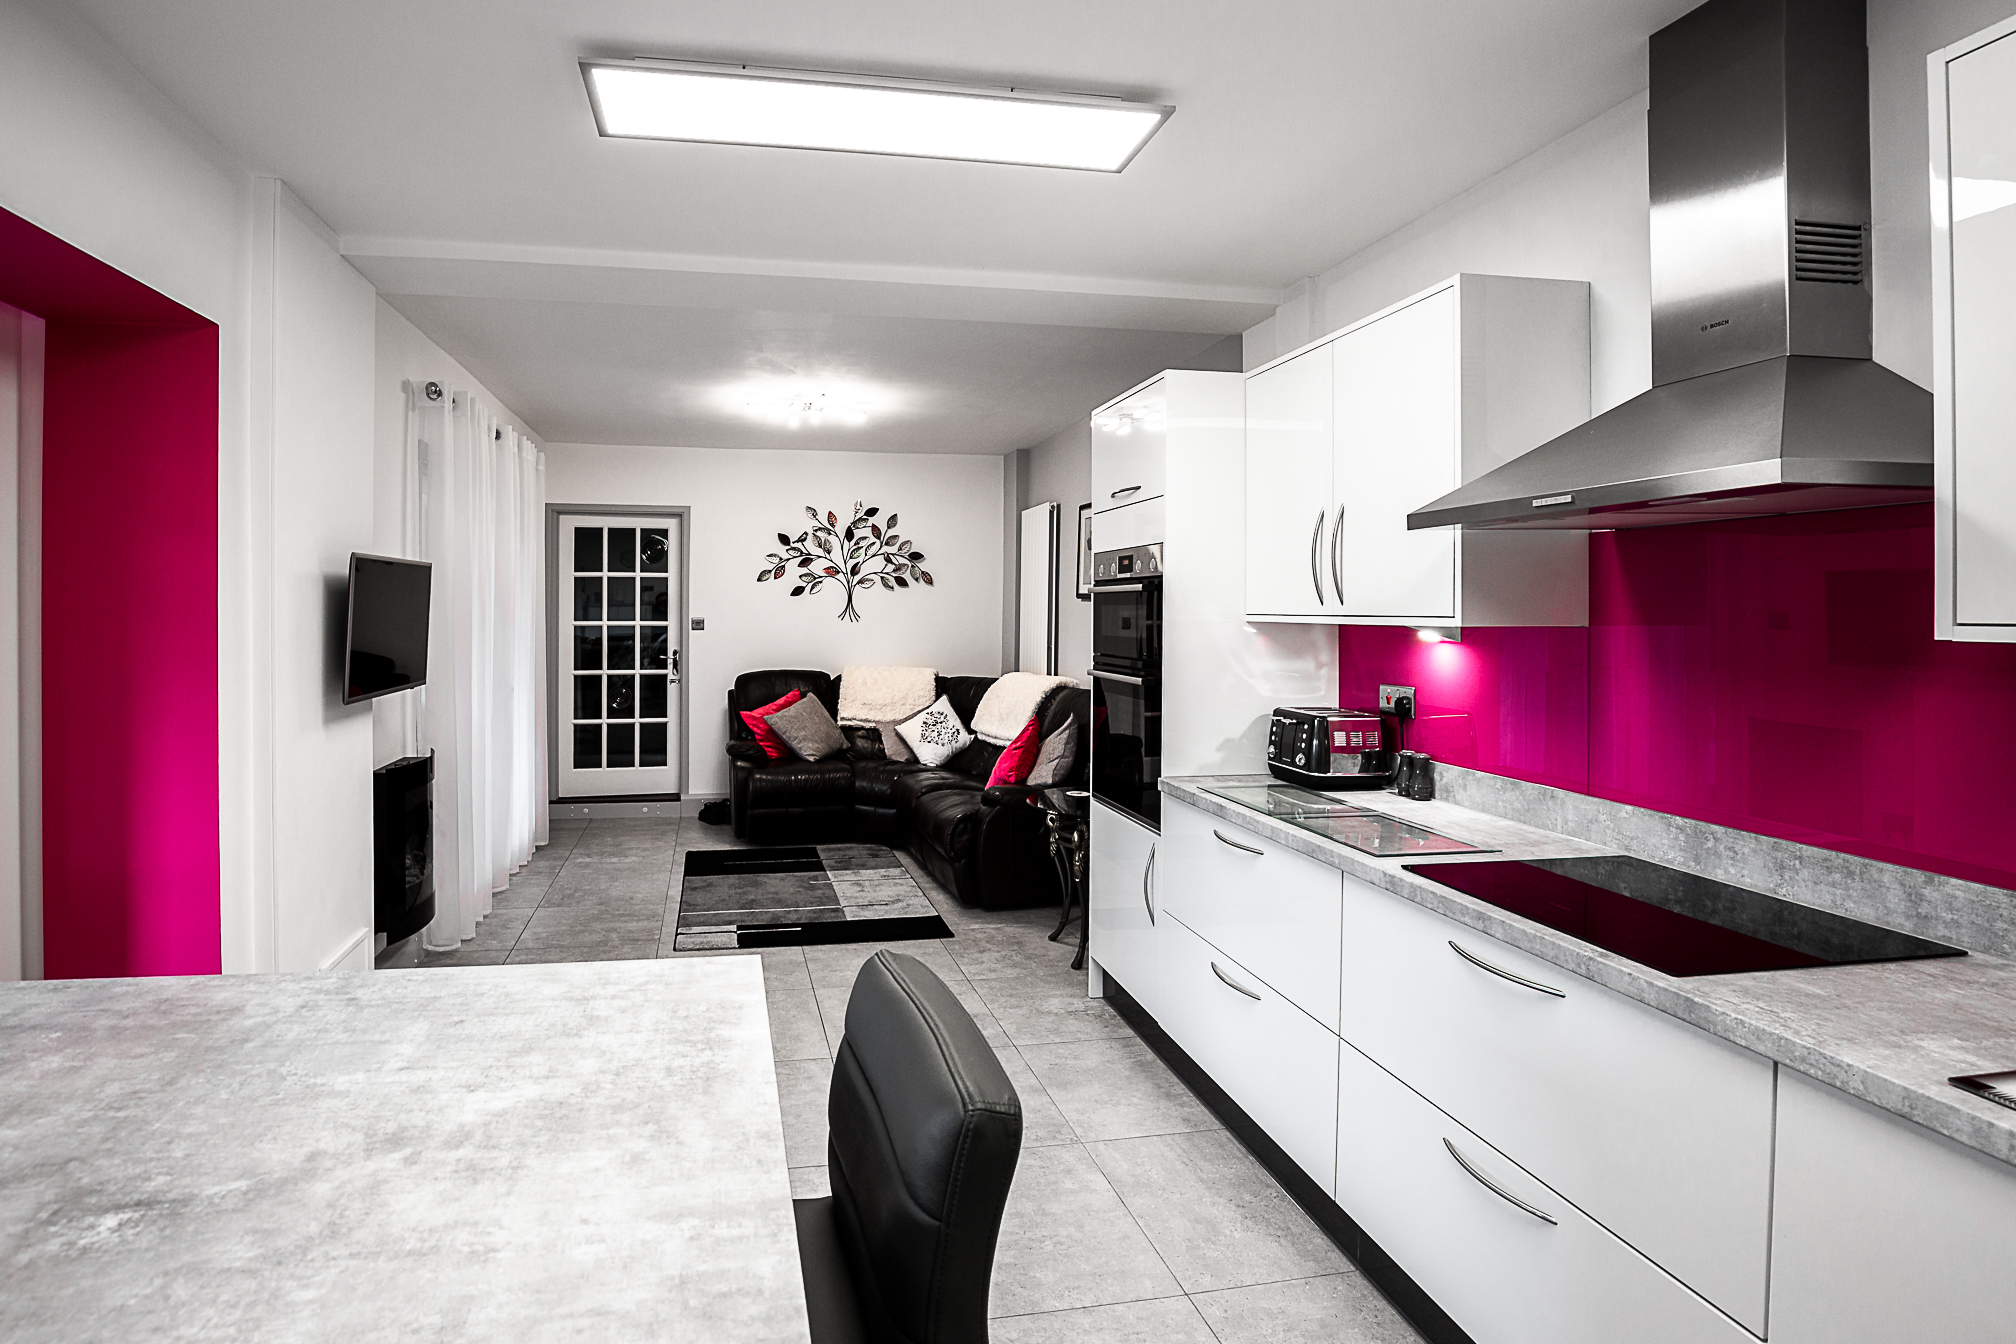 Kitchen & Living Room Extension